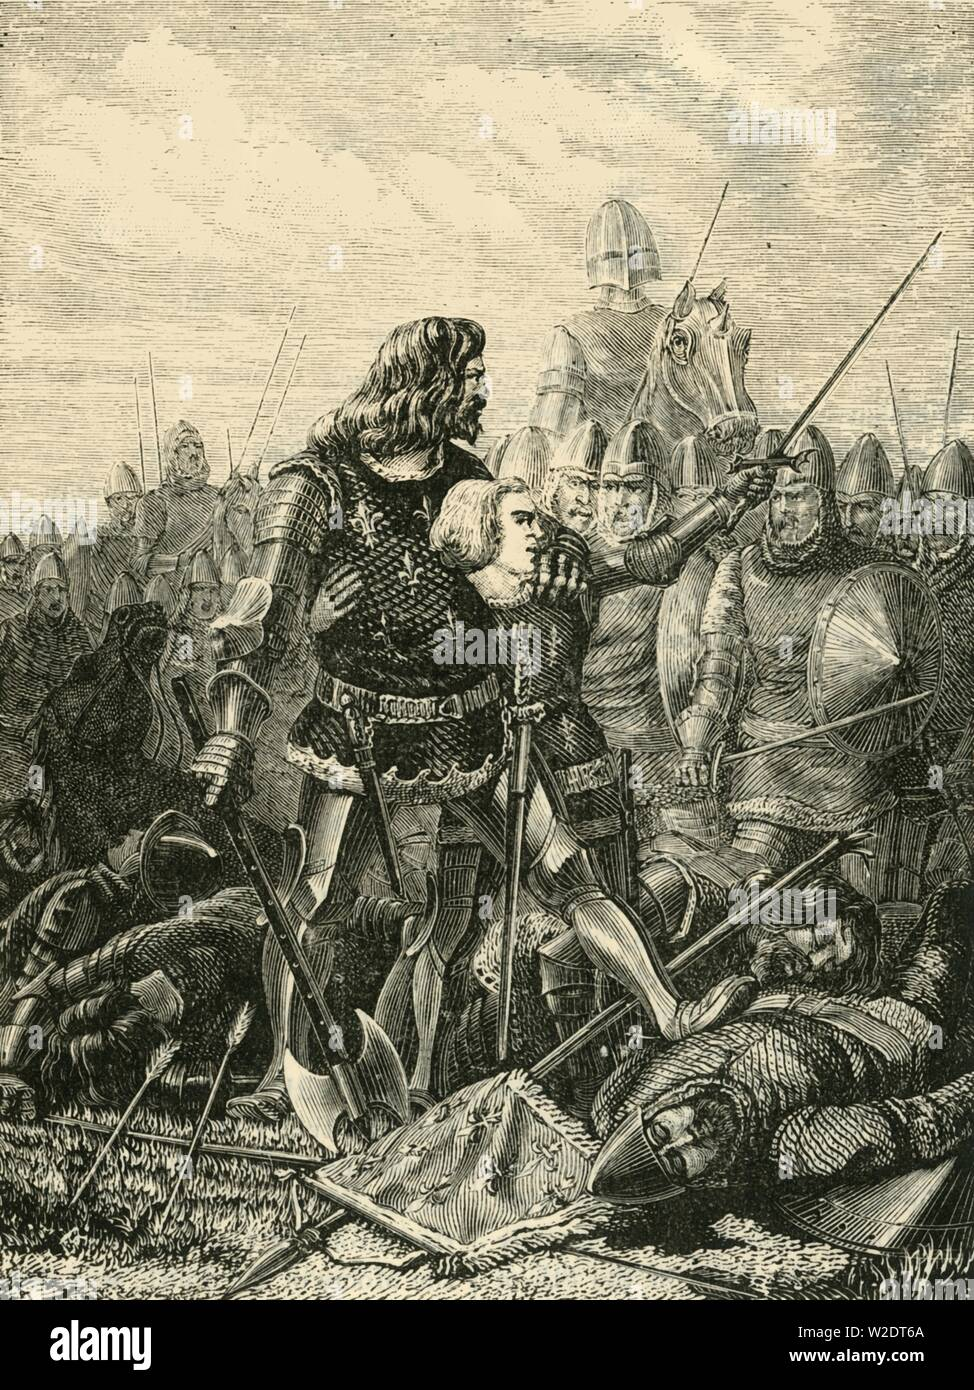 """'King John at Poitiers', (1356), 1890. John II of France (1319-1364), surrounded and captured by the French army of Edward the Black Prince at the Battle of Poitiers in 1356 during the Hundred Years War. From """"Cassell's Illustrated Universal History, Vol. III - The Middle Ages"""", by Edmund Ollier. [Cassell and Company, Limited, London, Paris and Melbourne, 1890. ] - Stock Image"""